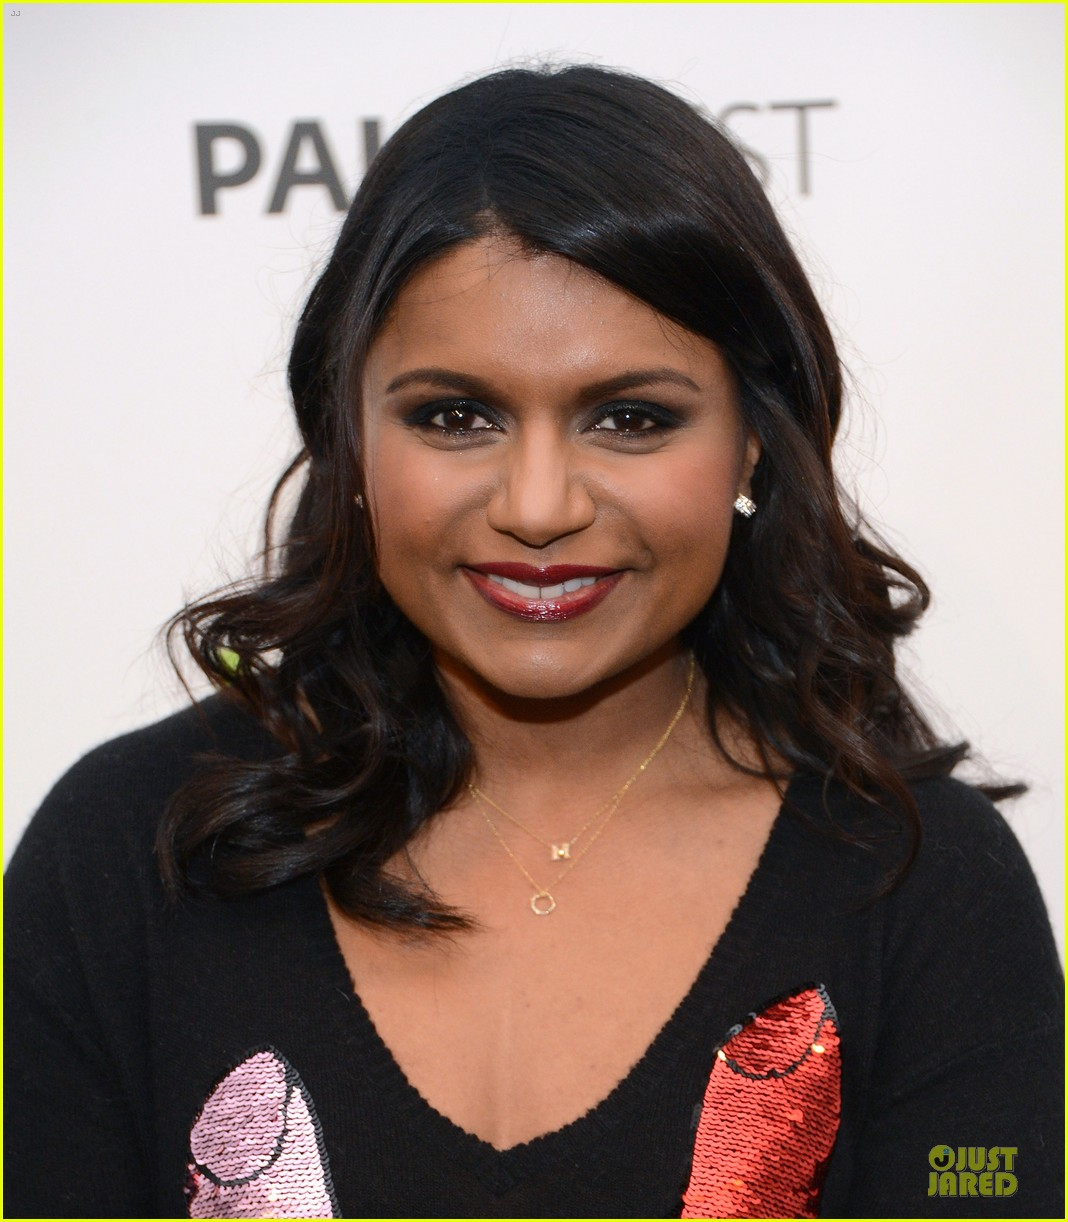 mindy kaling voguemindy kaling book, mindy kaling 2016, mindy kaling and bj novak, mindy kaling 2017, mindy kaling bj novak relationship, mindy kaling book read online, mindy kaling plastic, mindy kaling photos, mindy kaling why not me epub, mindy kaling wiki, mindy kaling greta gerwig, mindy kaling buzzfeed, mindy kaling arm, mindy kaling invisible, mindy kaling vogue, mindy kaling wdw, mindy kaling conan, mindy kaling inside out, mindy kaling epub, mindy kaling and bj novak tweets